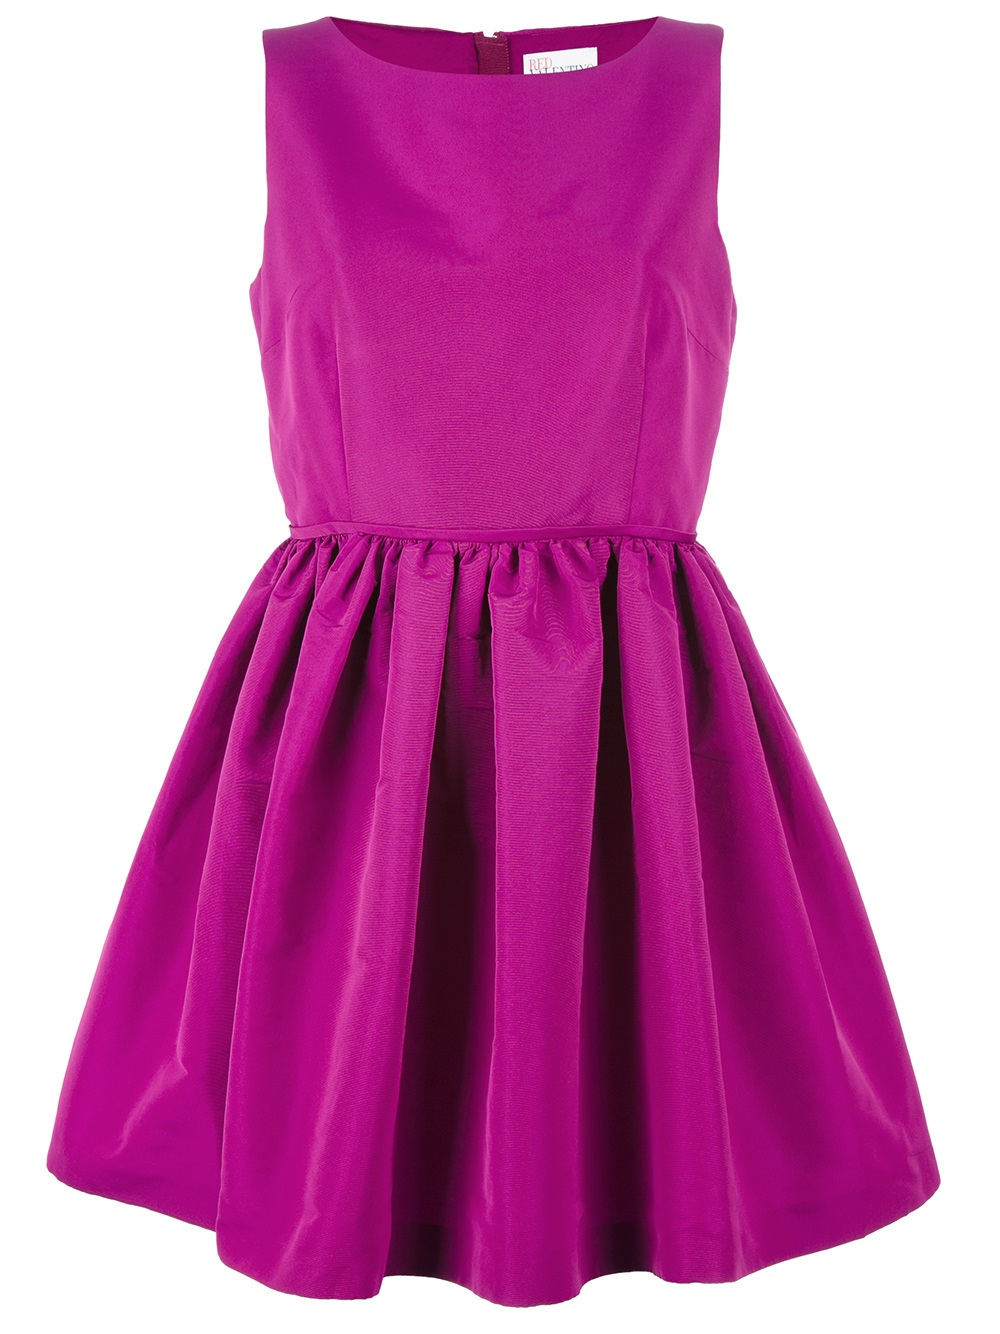 Lyst - Red Valentino Fit and Flare Cocktail Dress in Purple